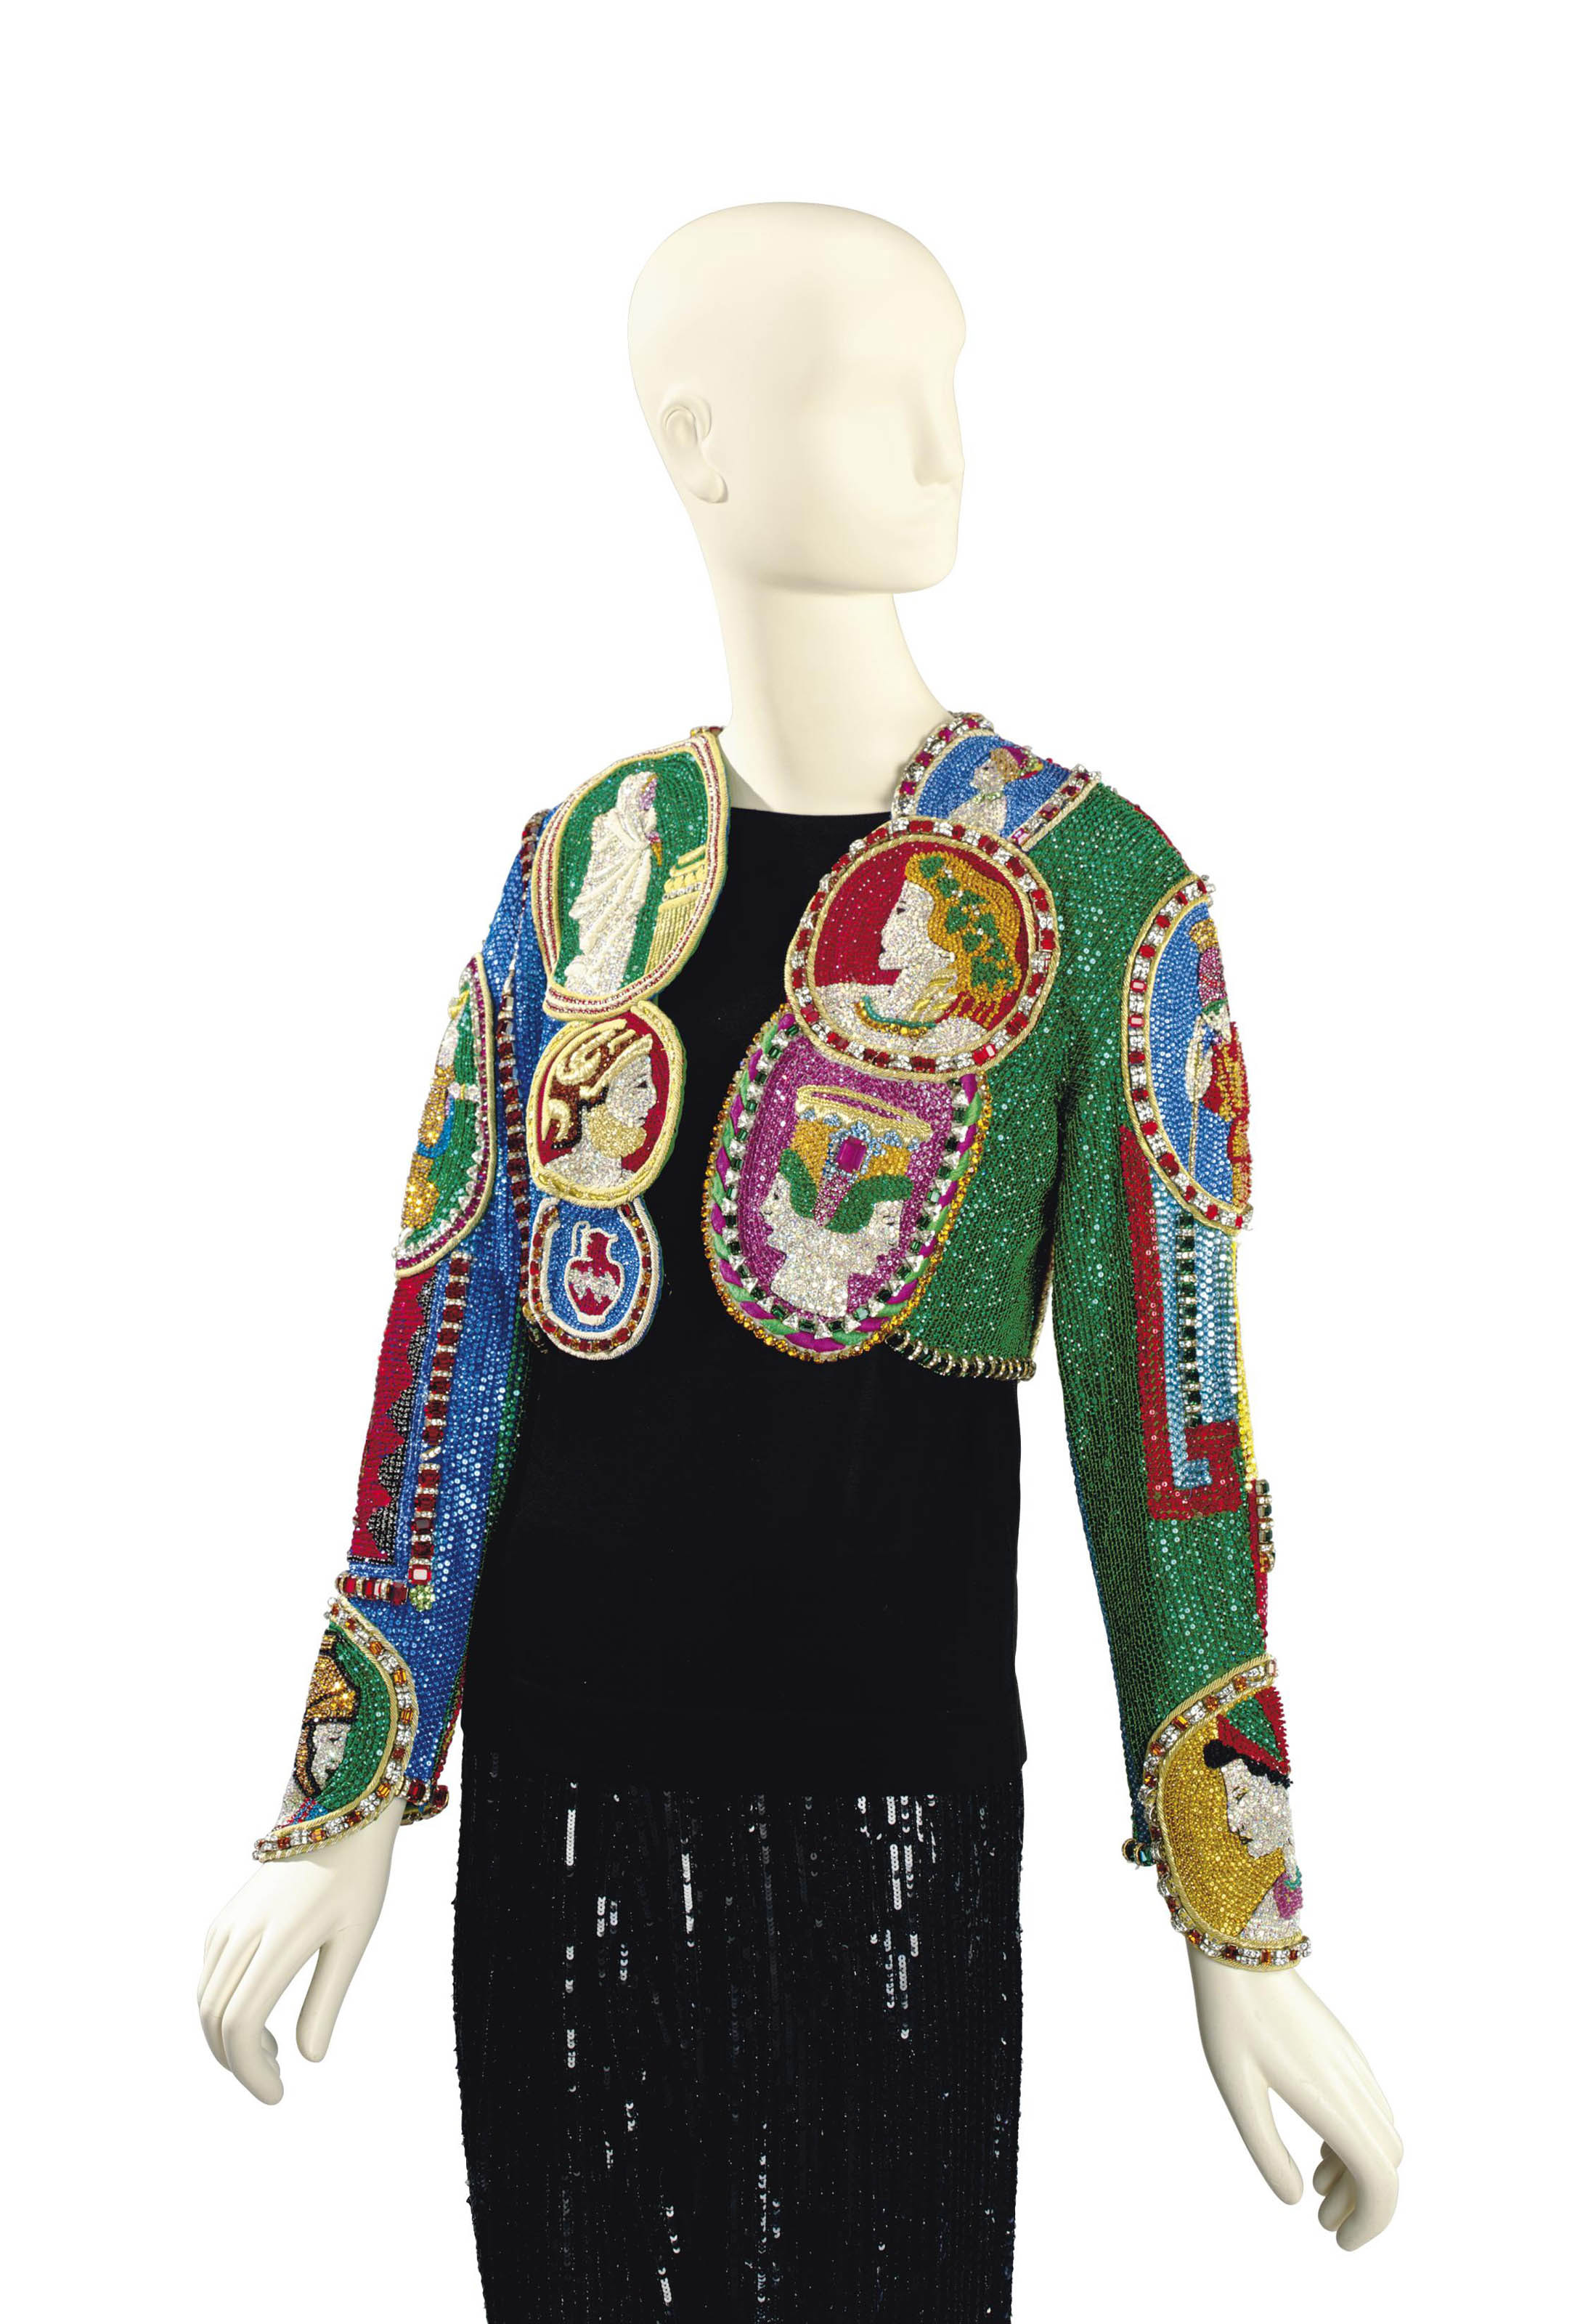 A VERSACE BEADED EVENING BOLERO JACKET, 'GREEK FACES'